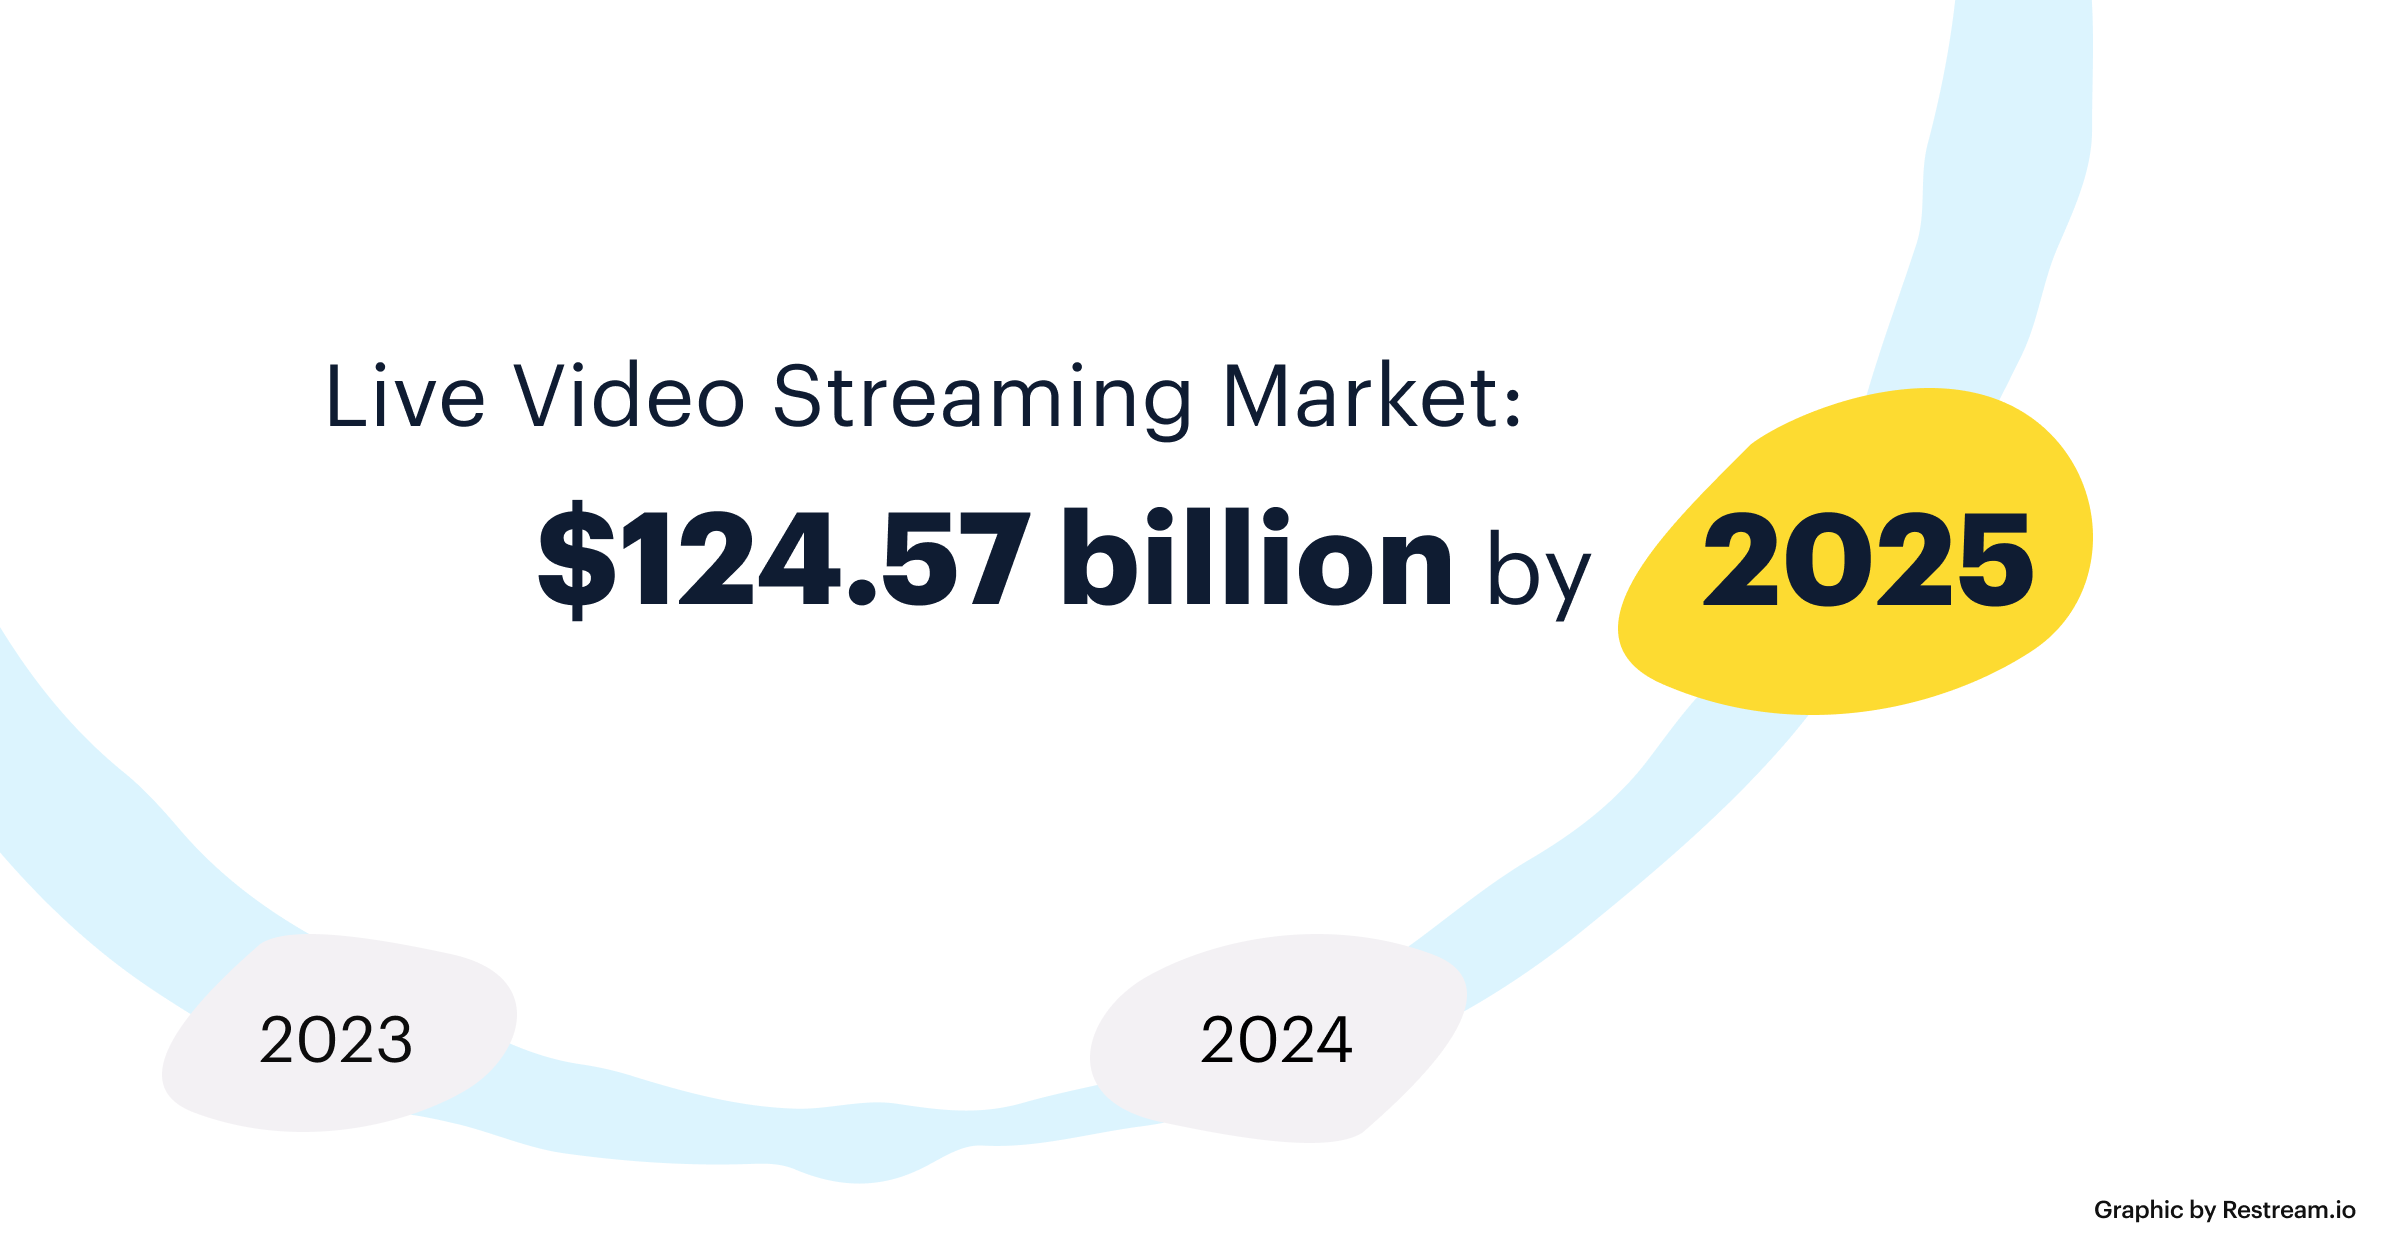 Live video streaming market will be 124.57 billion by 2025